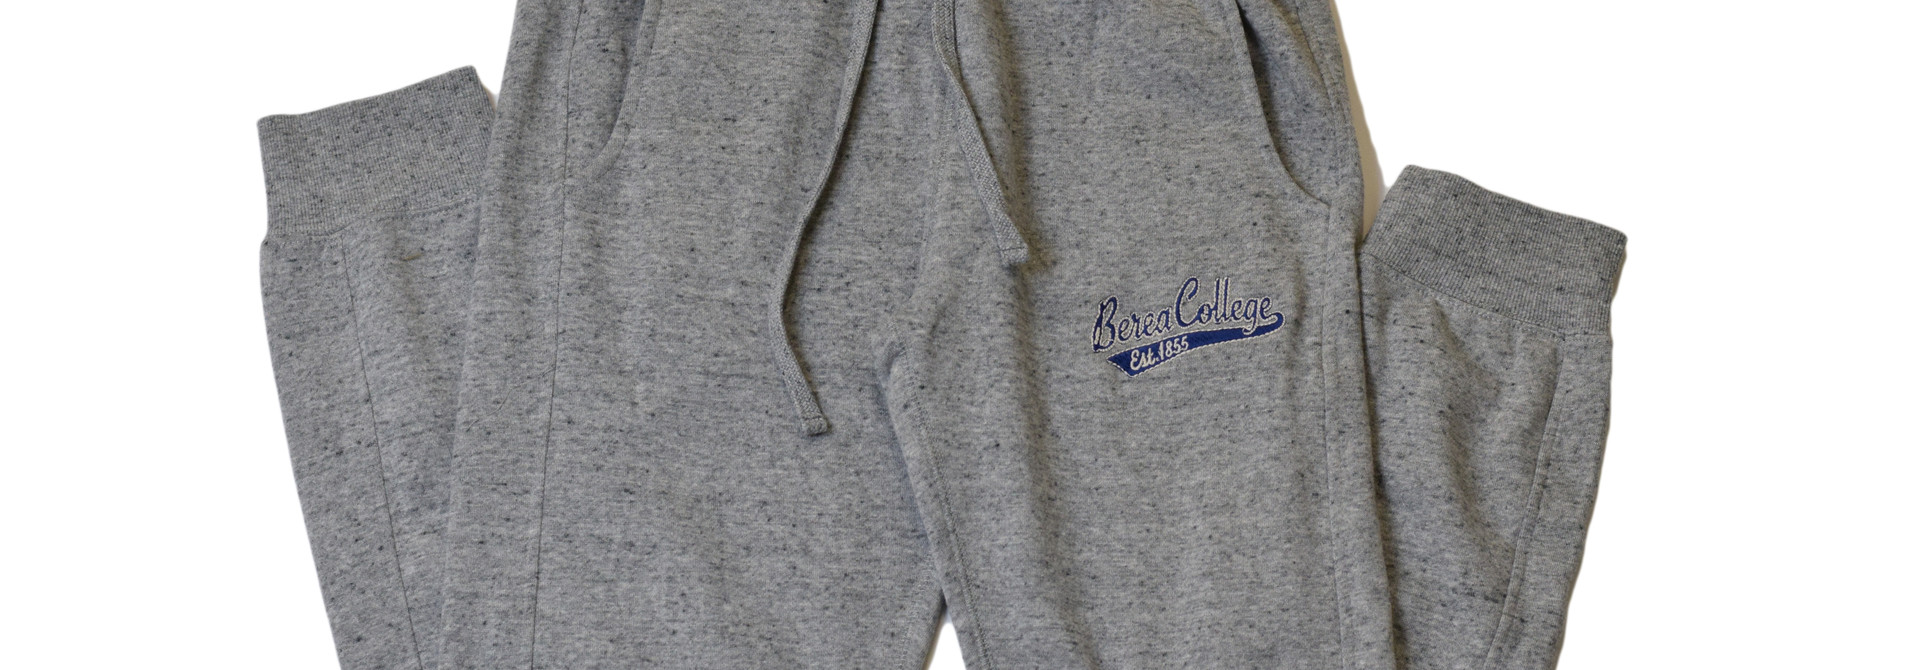 Heather Berea College 1855 Sweatpants